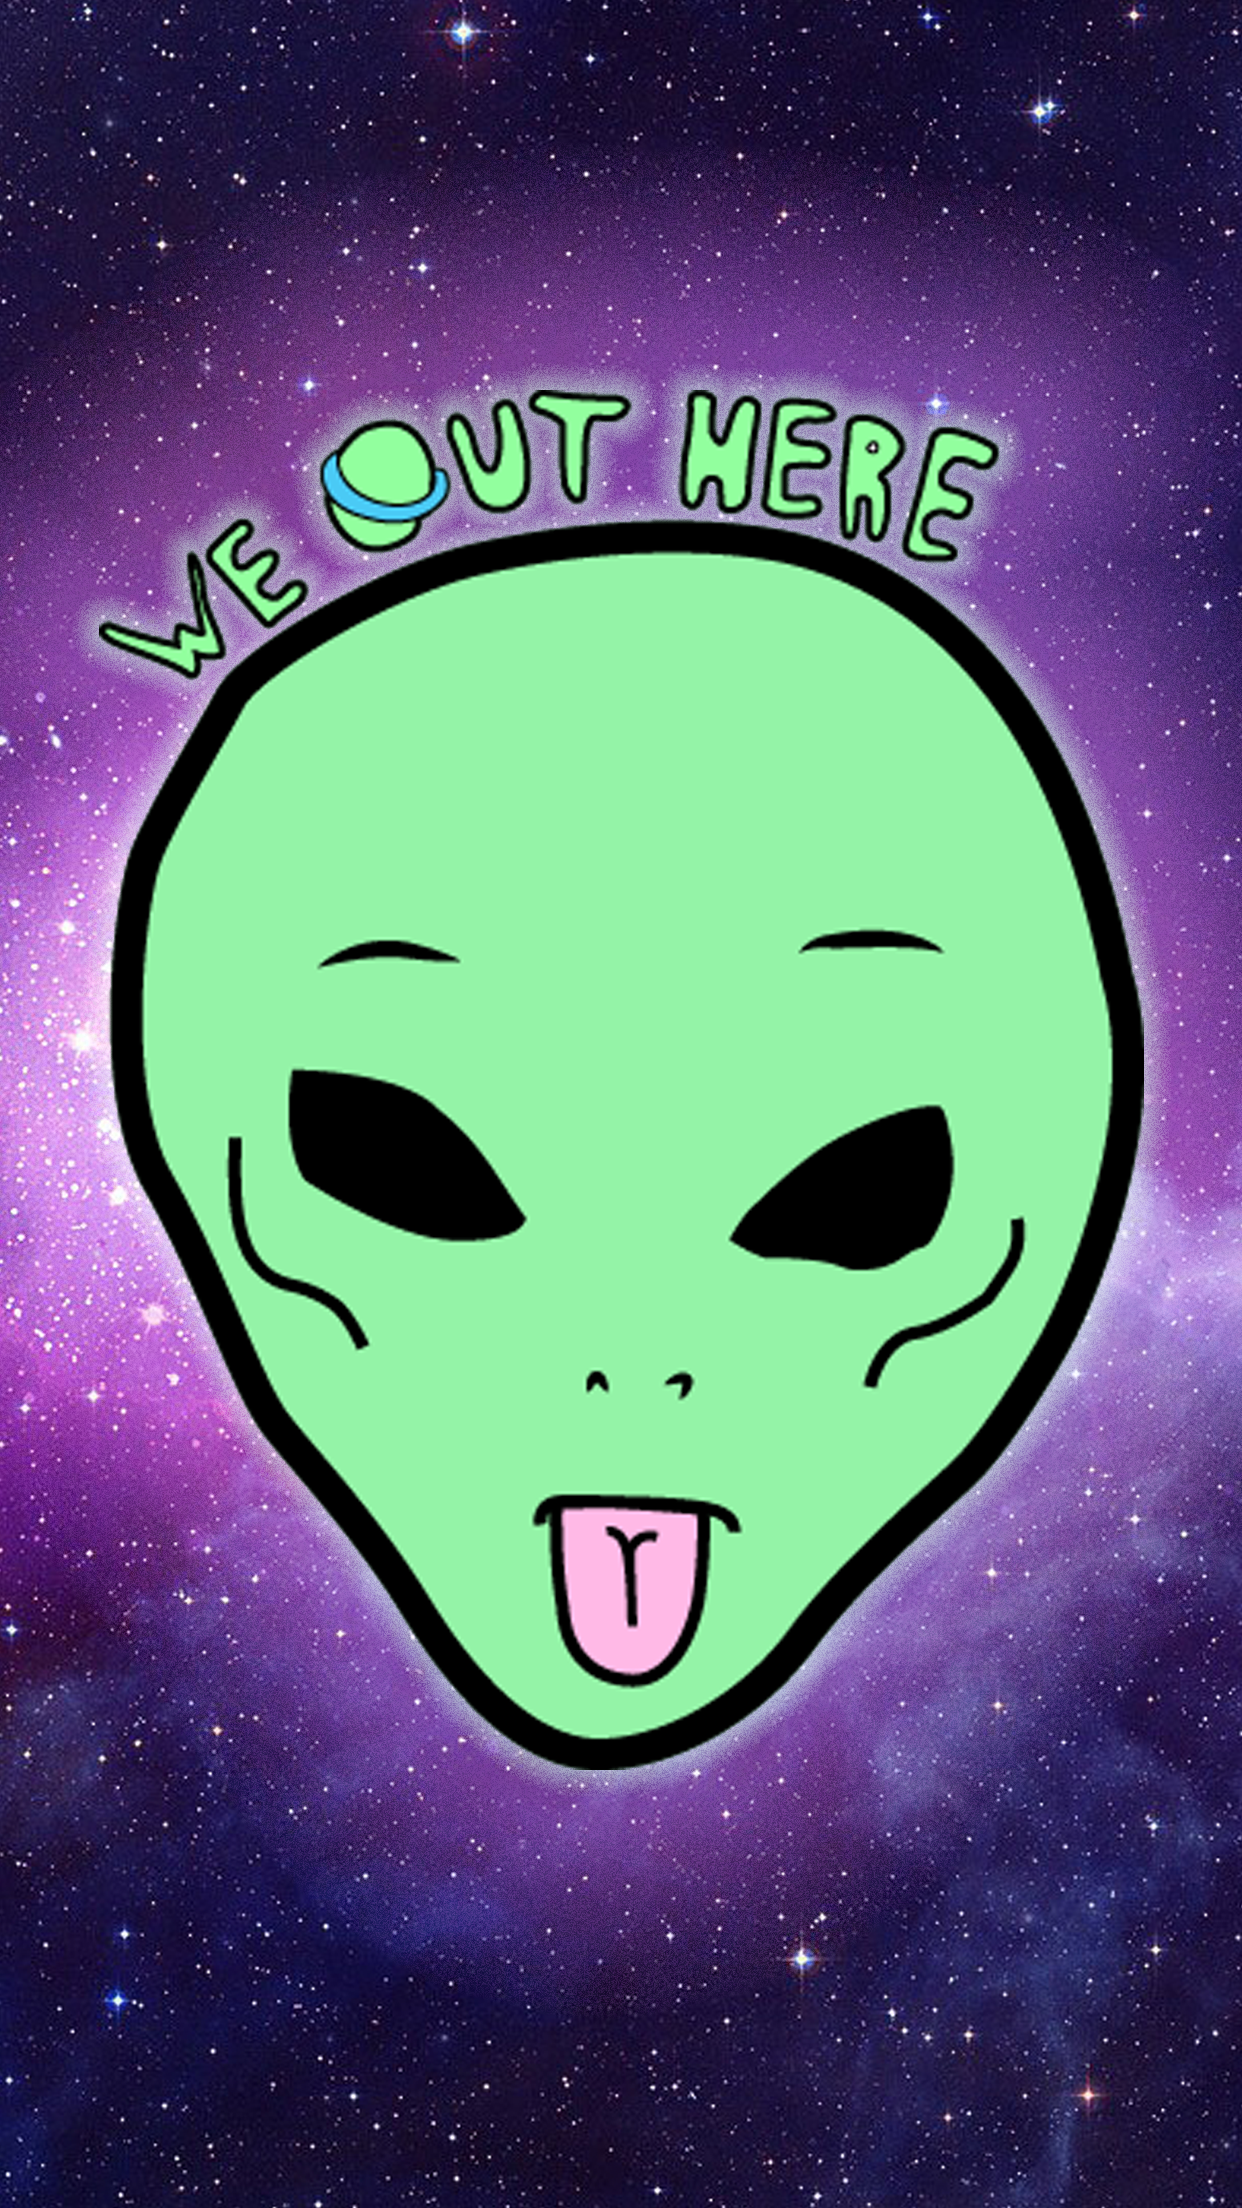 Alien iphone wallpaper tumblr - Rip N Dip Iphone Wallpaper